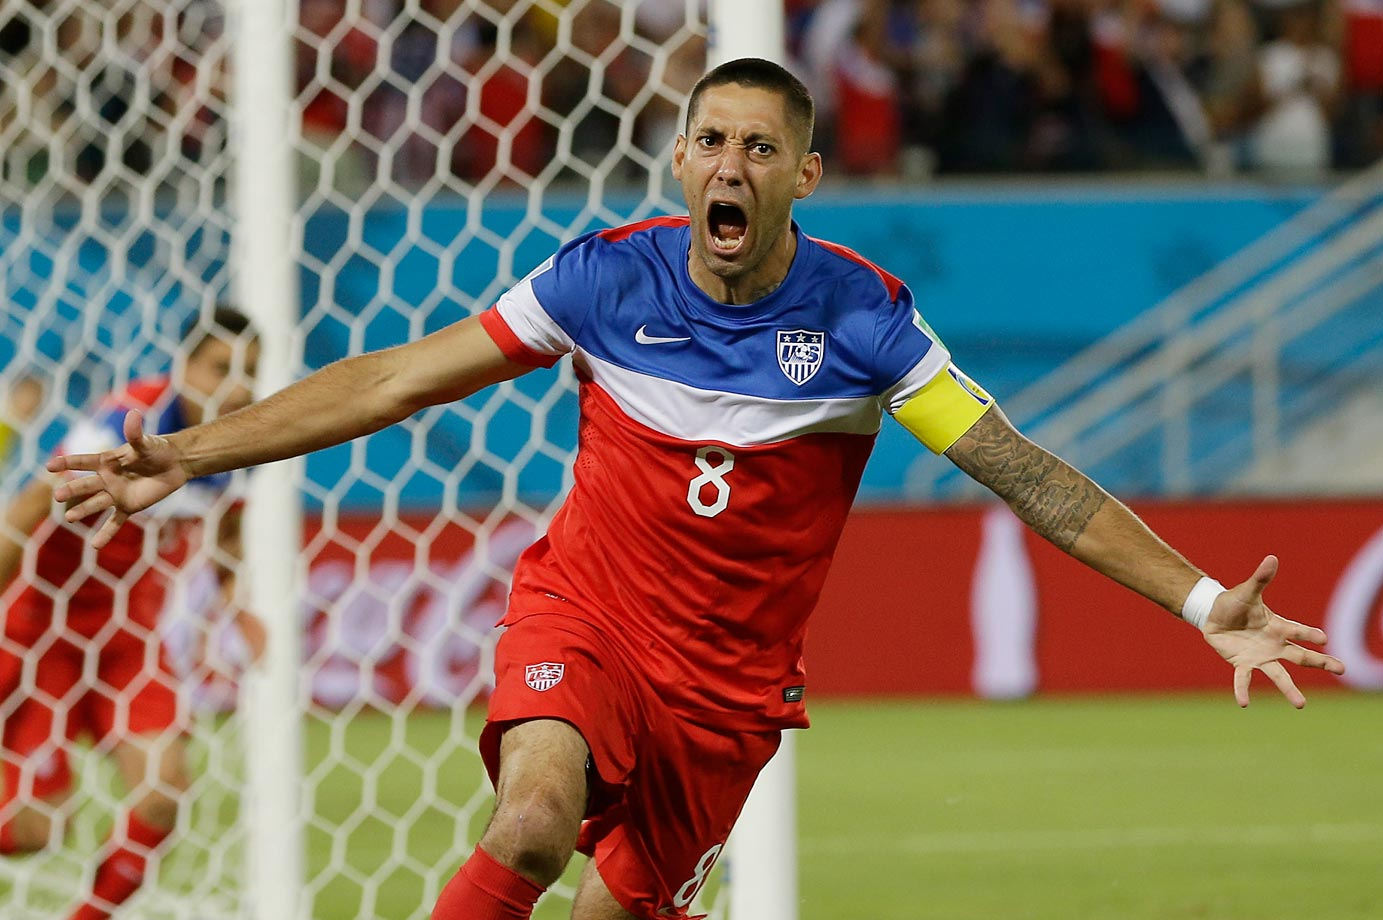 Clint Dempsey of the U.S. celebrates after scoring the opening goal during the group G World Cup soccer match against Ghana. The United States won the match 2-1.